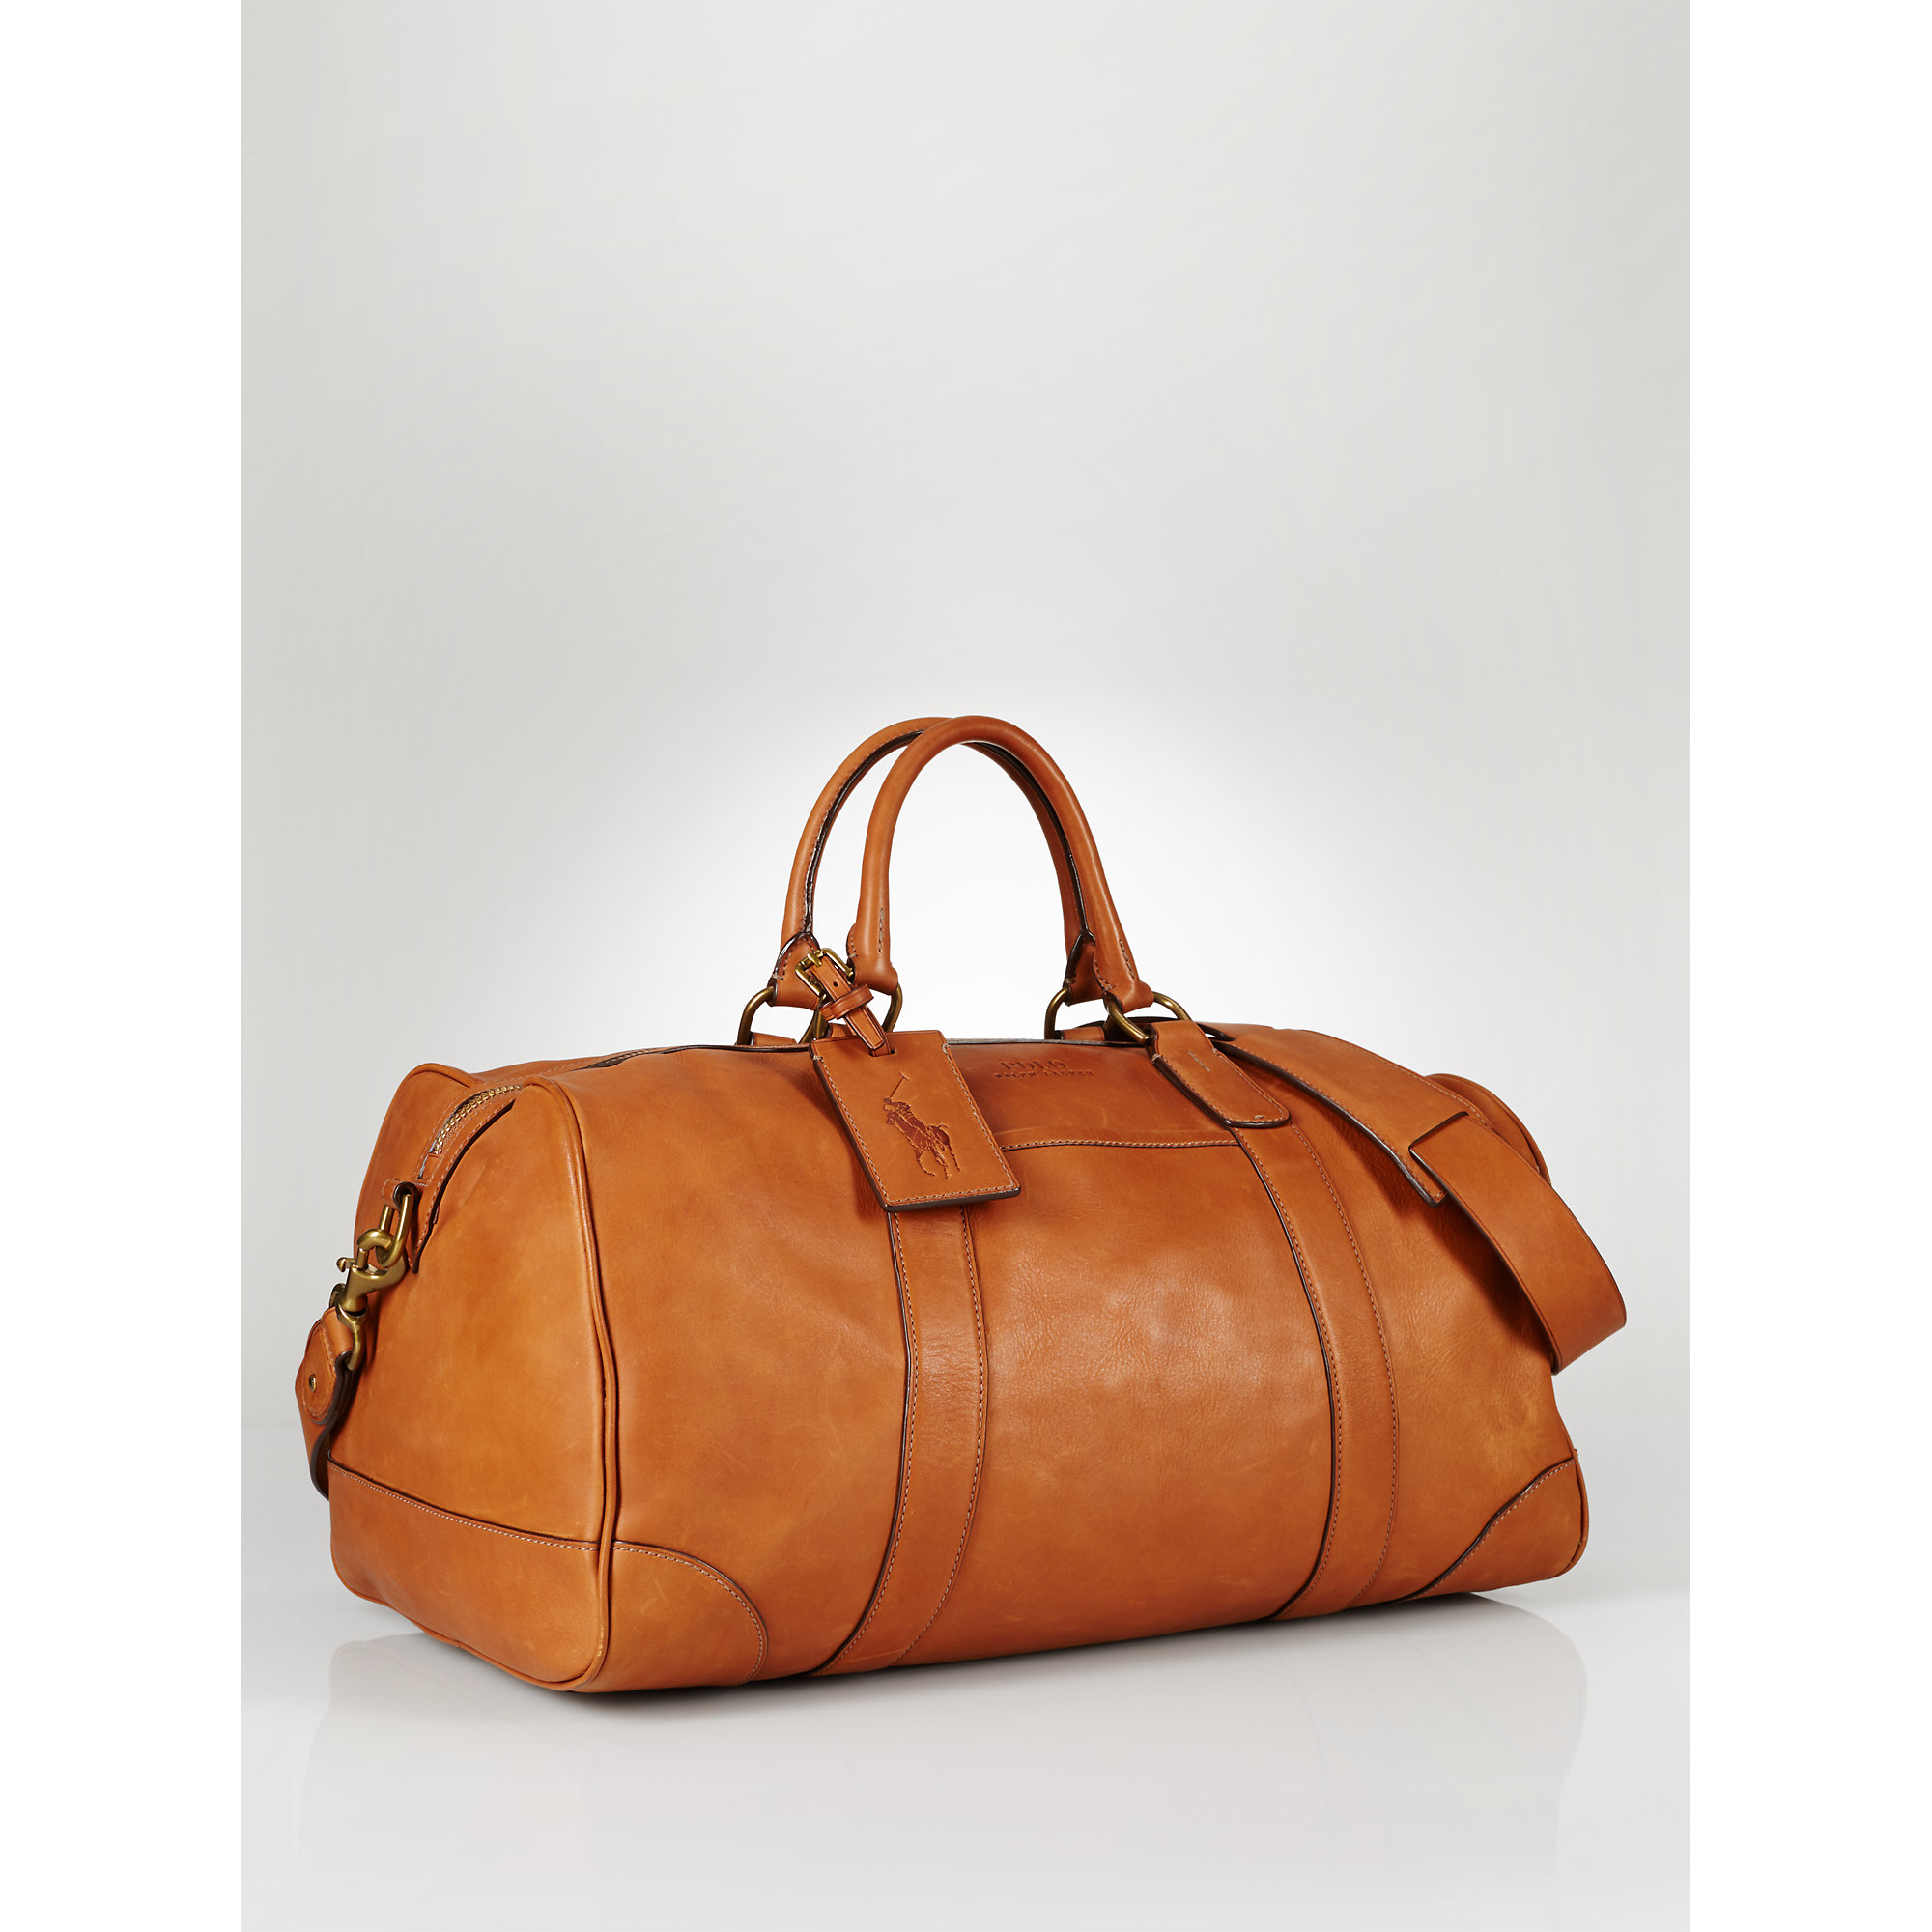 4dc50326a9 Lyst - Polo Ralph Lauren Leather Duffel Bag in Brown for Men